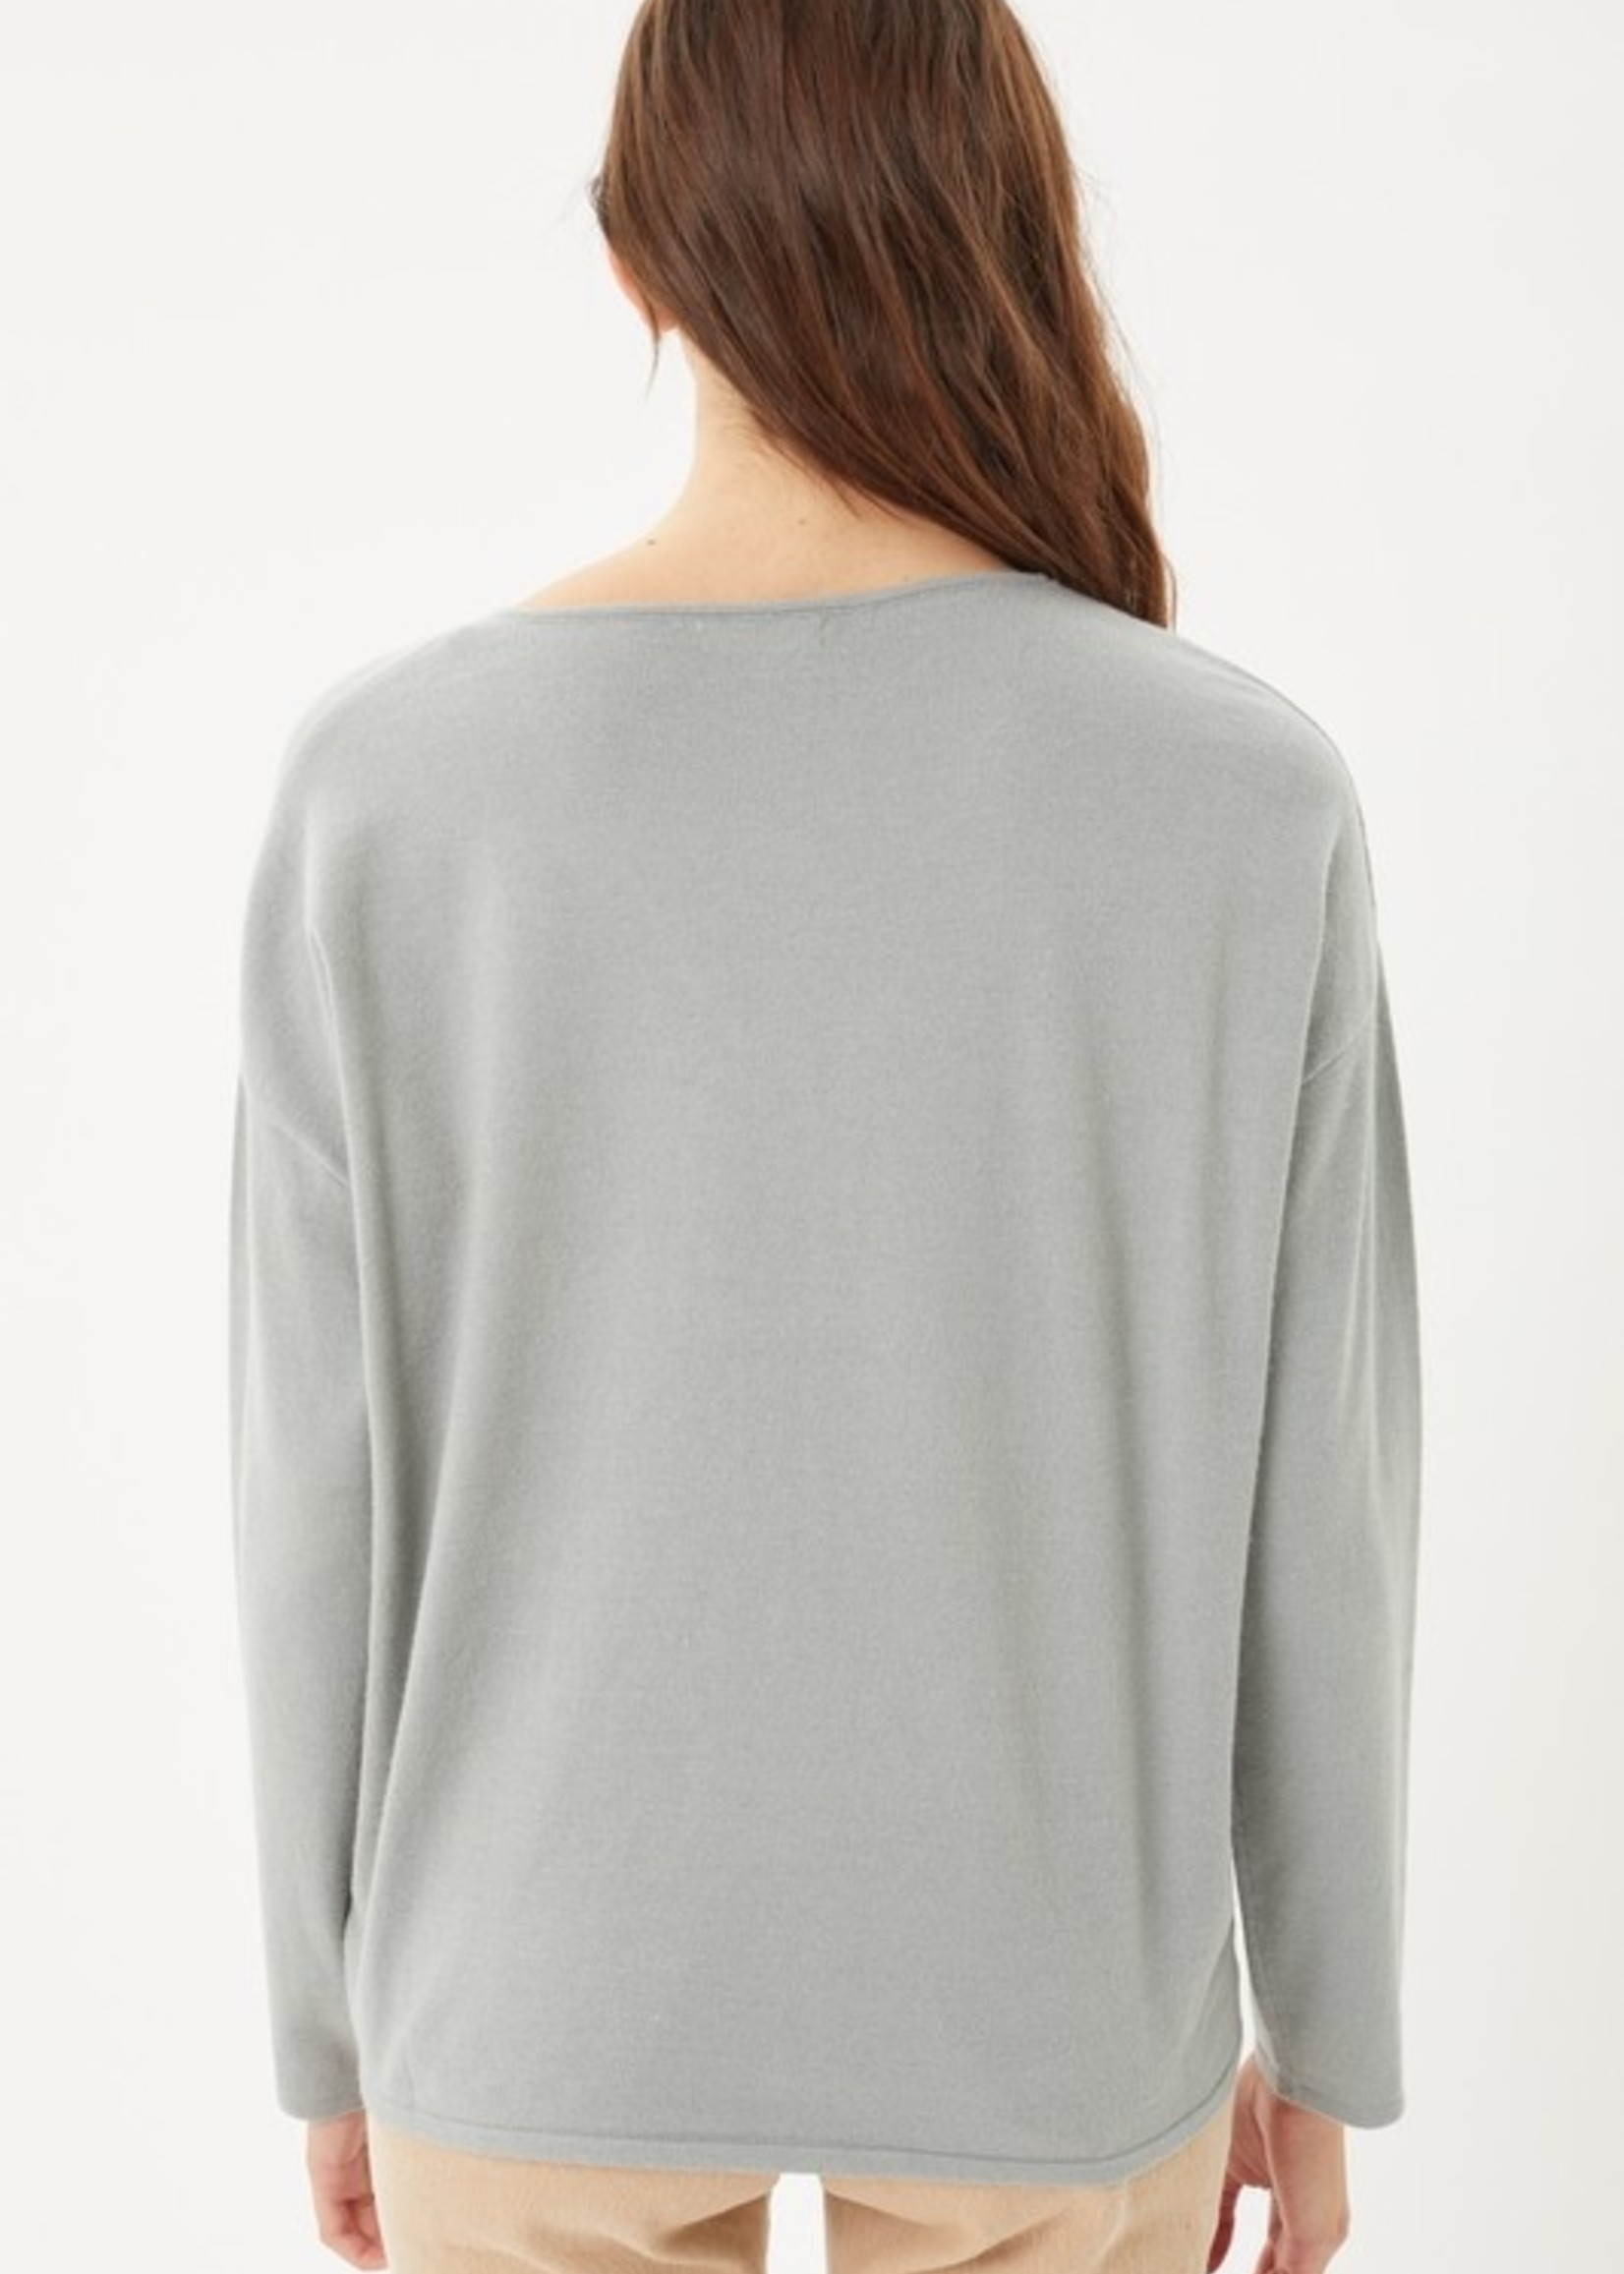 Ruched sweater 2 colors